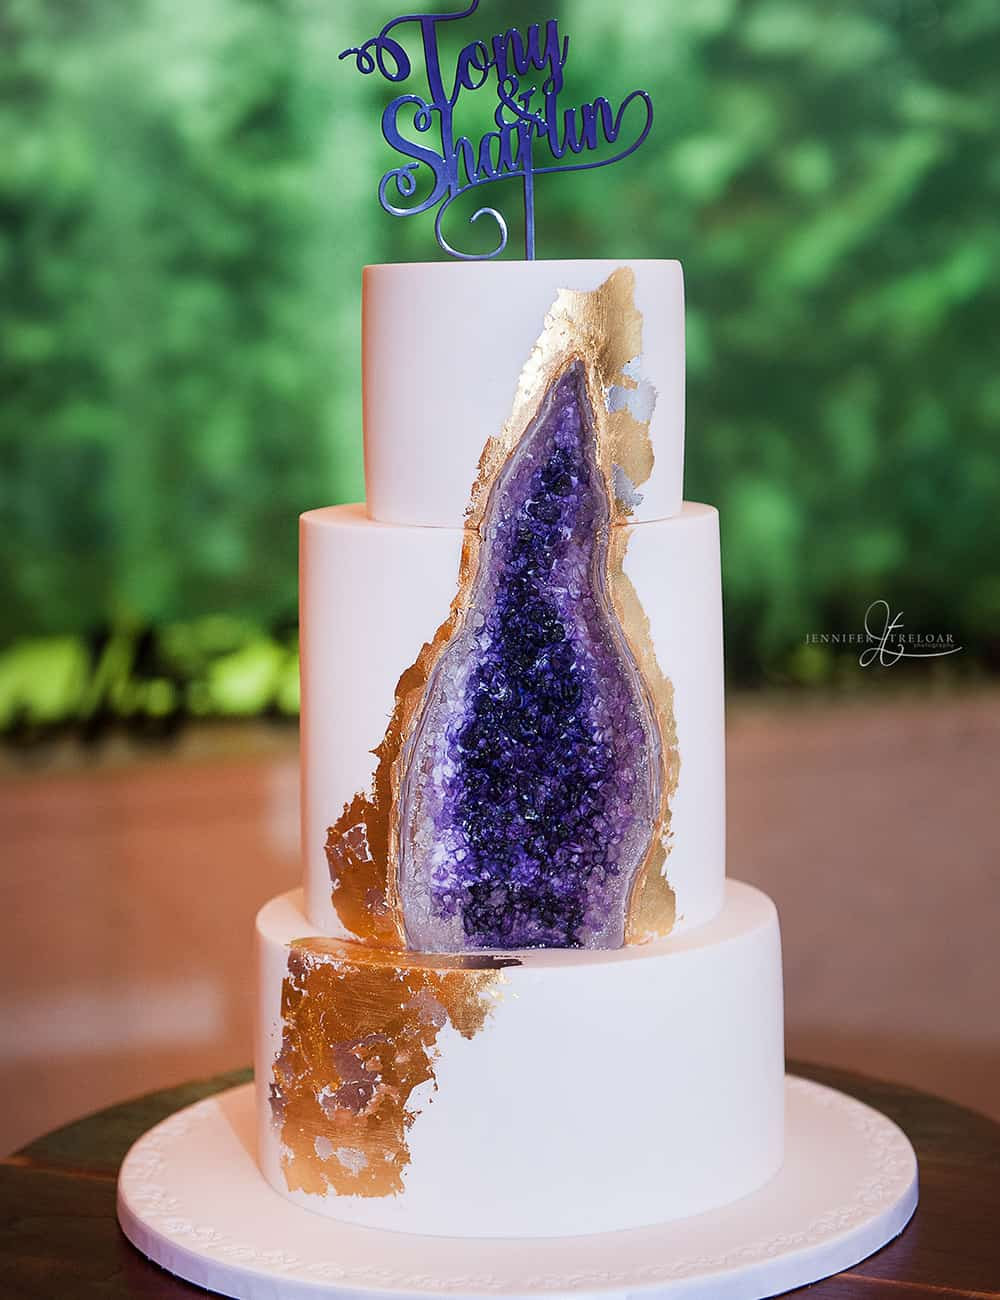 jewel-inspired geode wedding cake